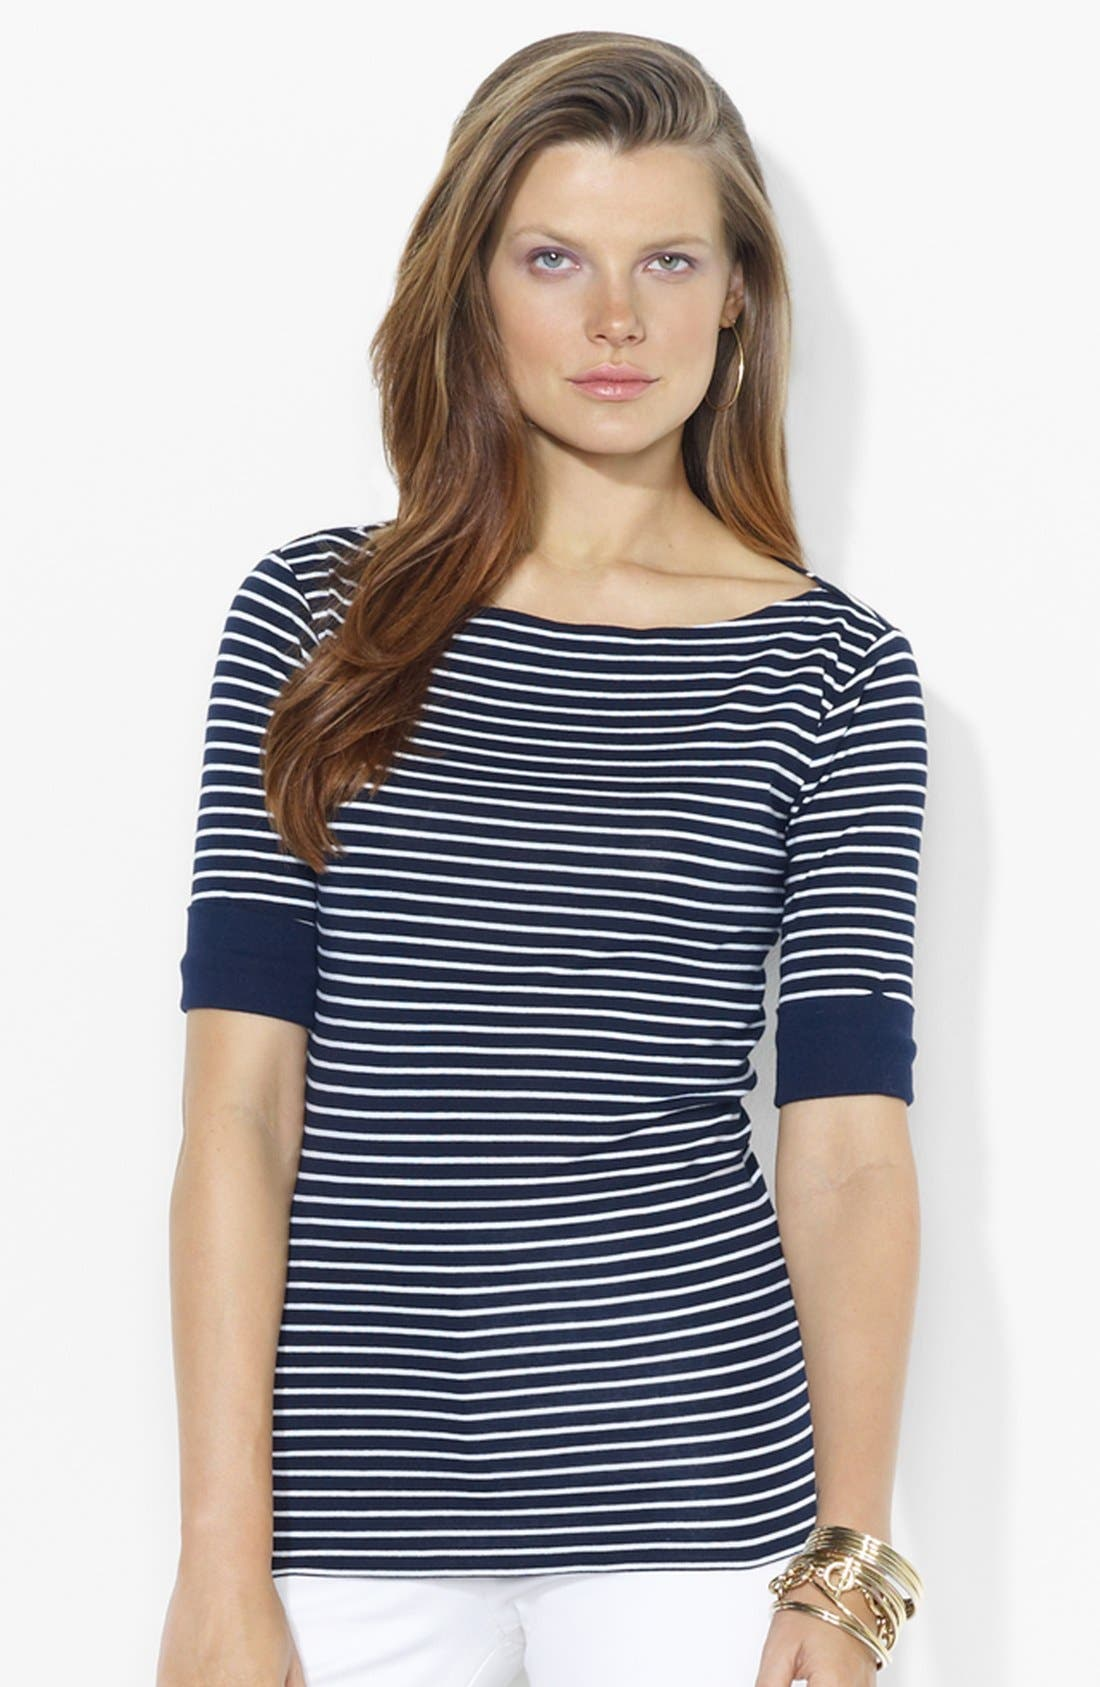 Alternate Image 1 Selected - Lauren Ralph Lauren Bateau Neck Top (Petite) (Online Only)